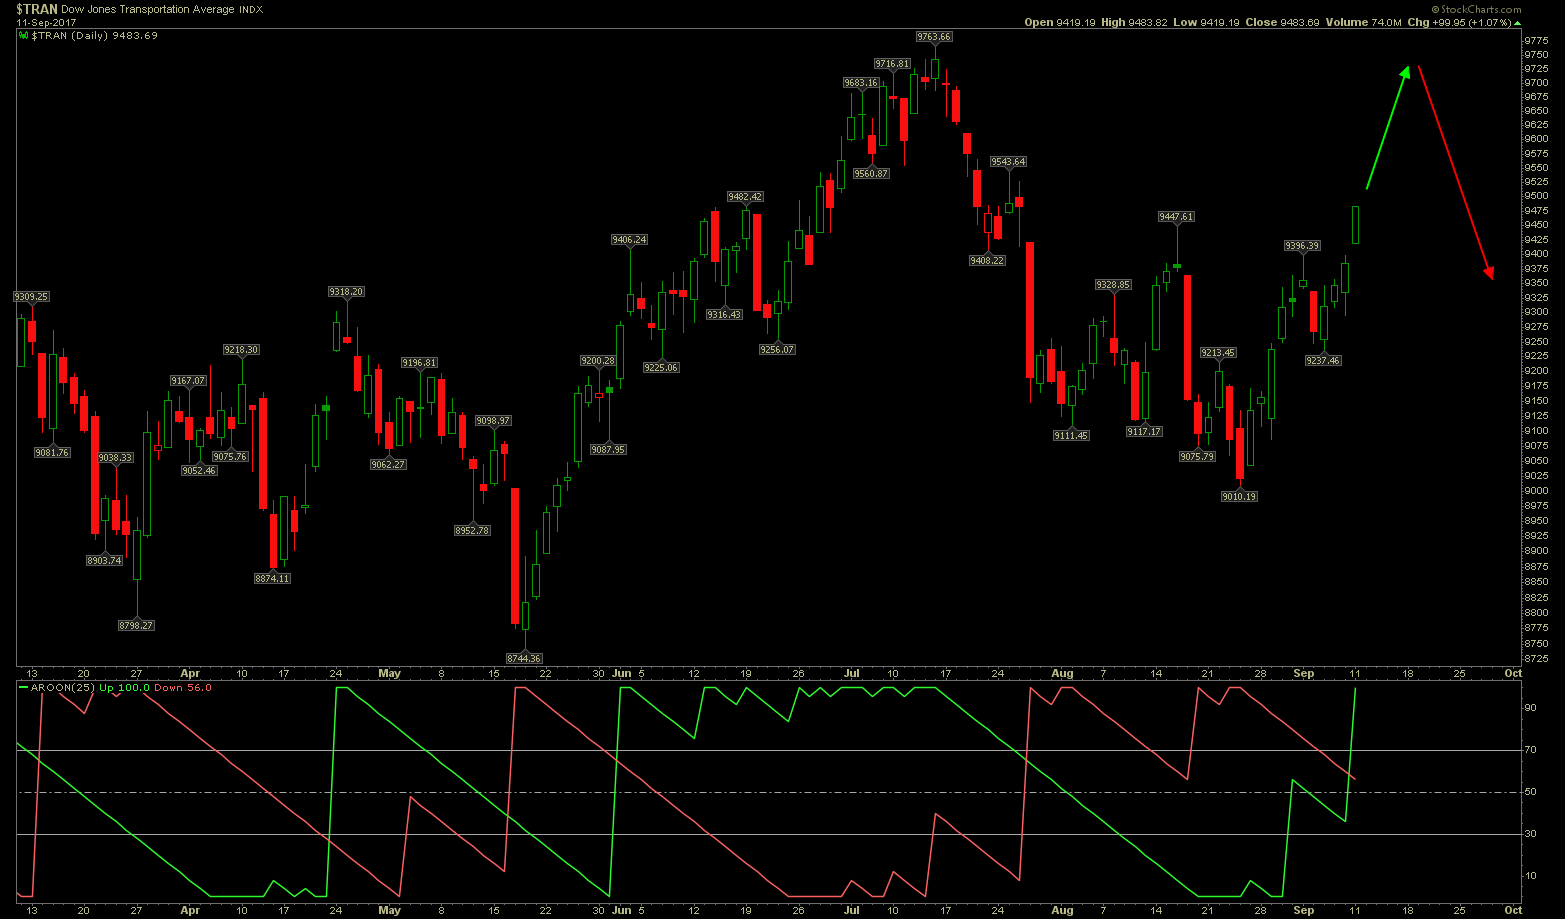 business transports chart 2 - Dow Jones Transportation Chart Fires Buy Signal On AROON Spike Up